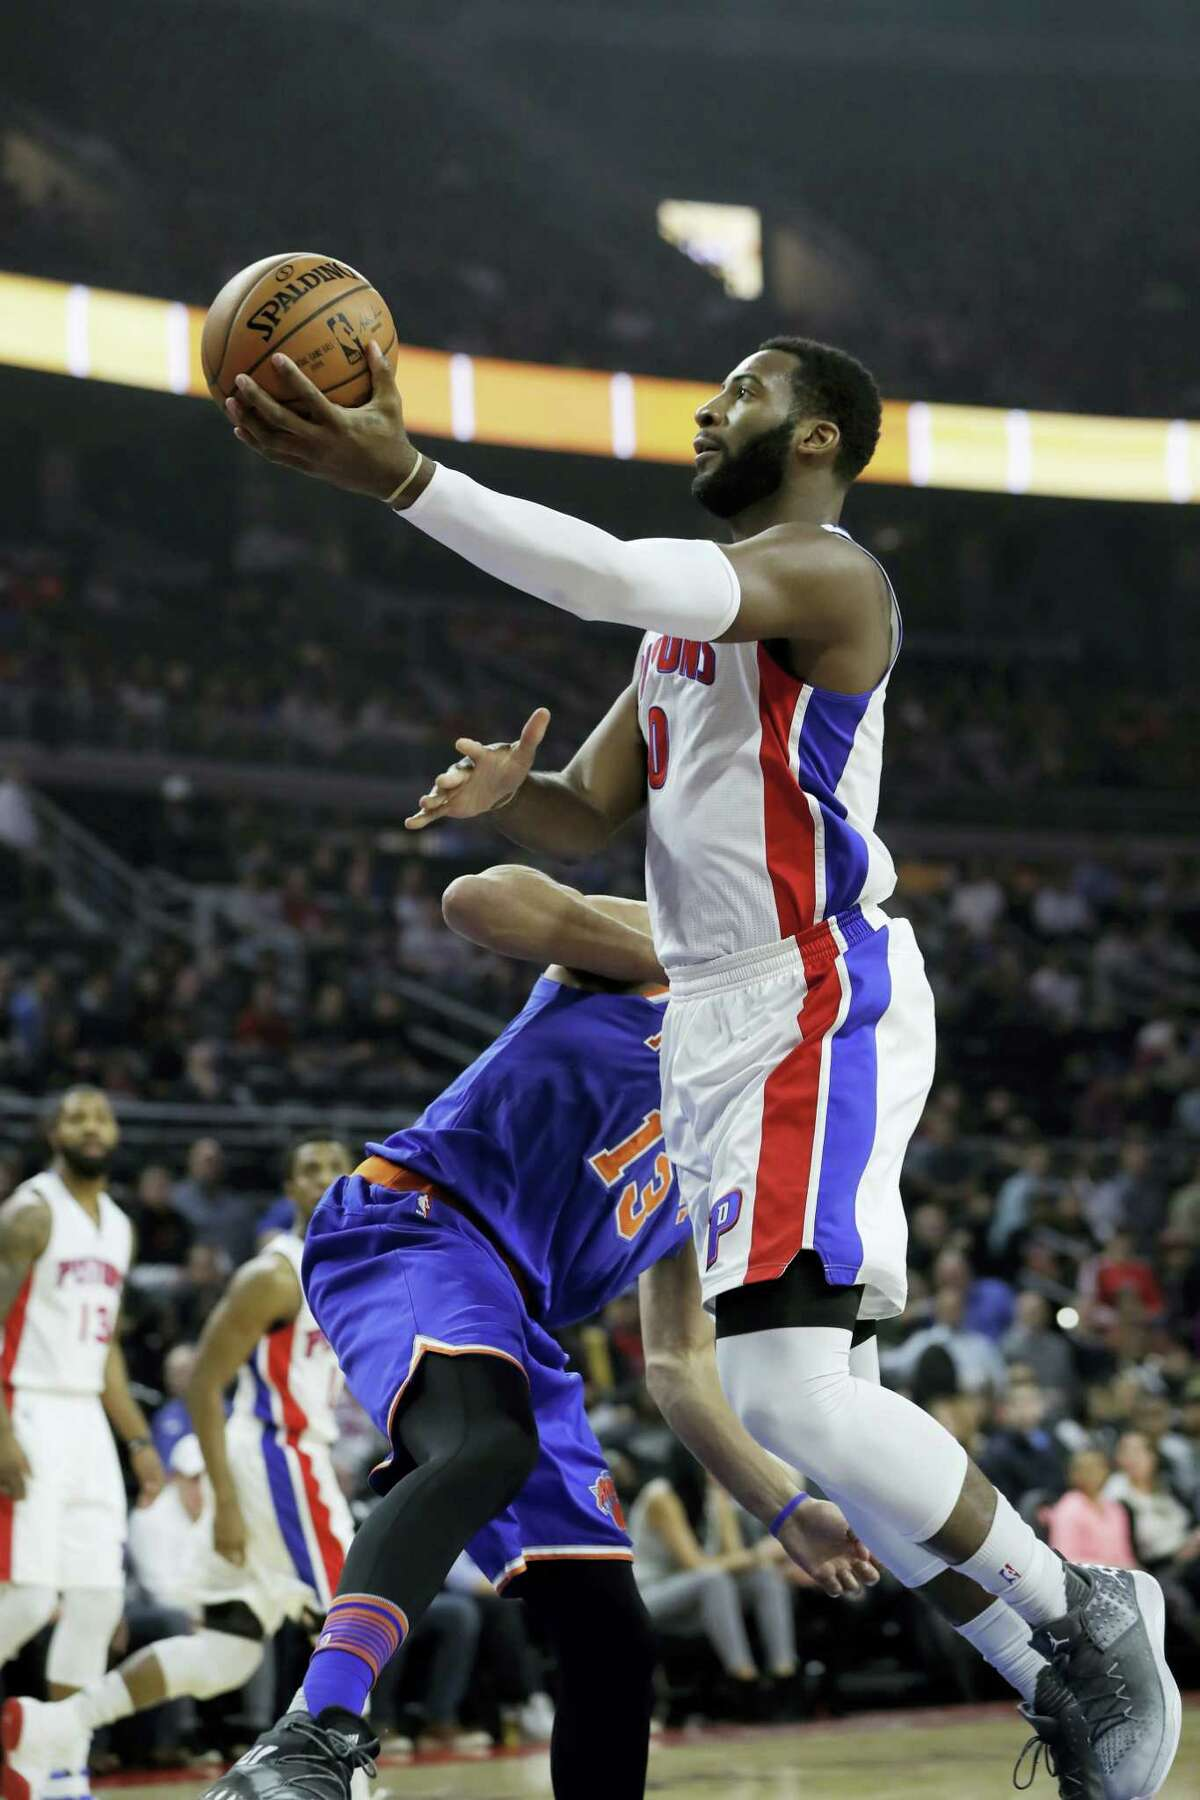 Pistons center Andre Drummond (0) makes a layup against the Knicks earlier this season.